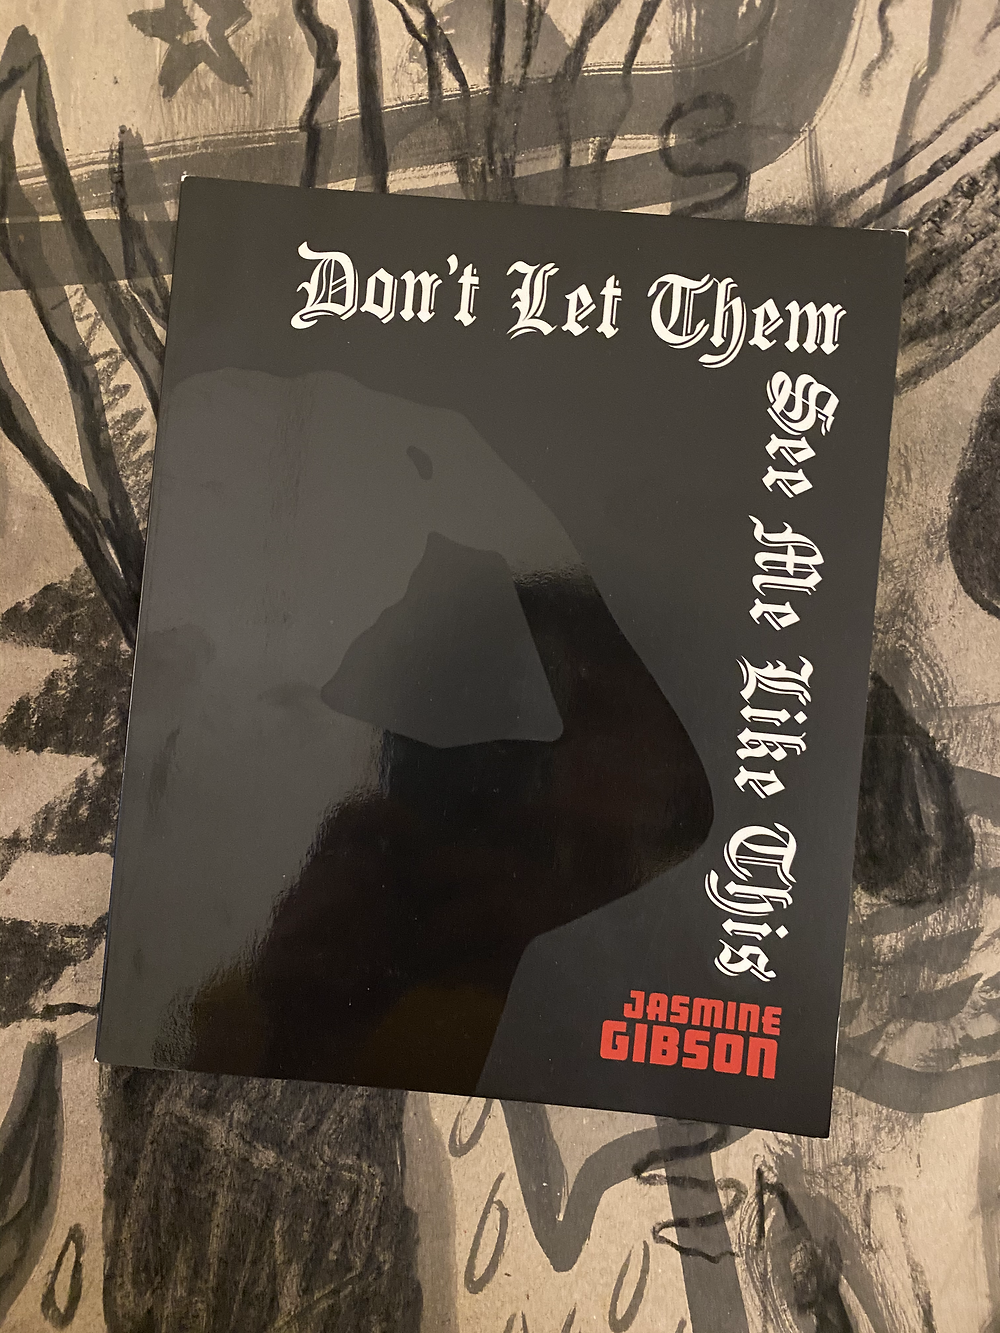 The cover for Gibson's book Don't Let Them See Me Like This is presented upon a charcoal drawing on cardboard backdrop